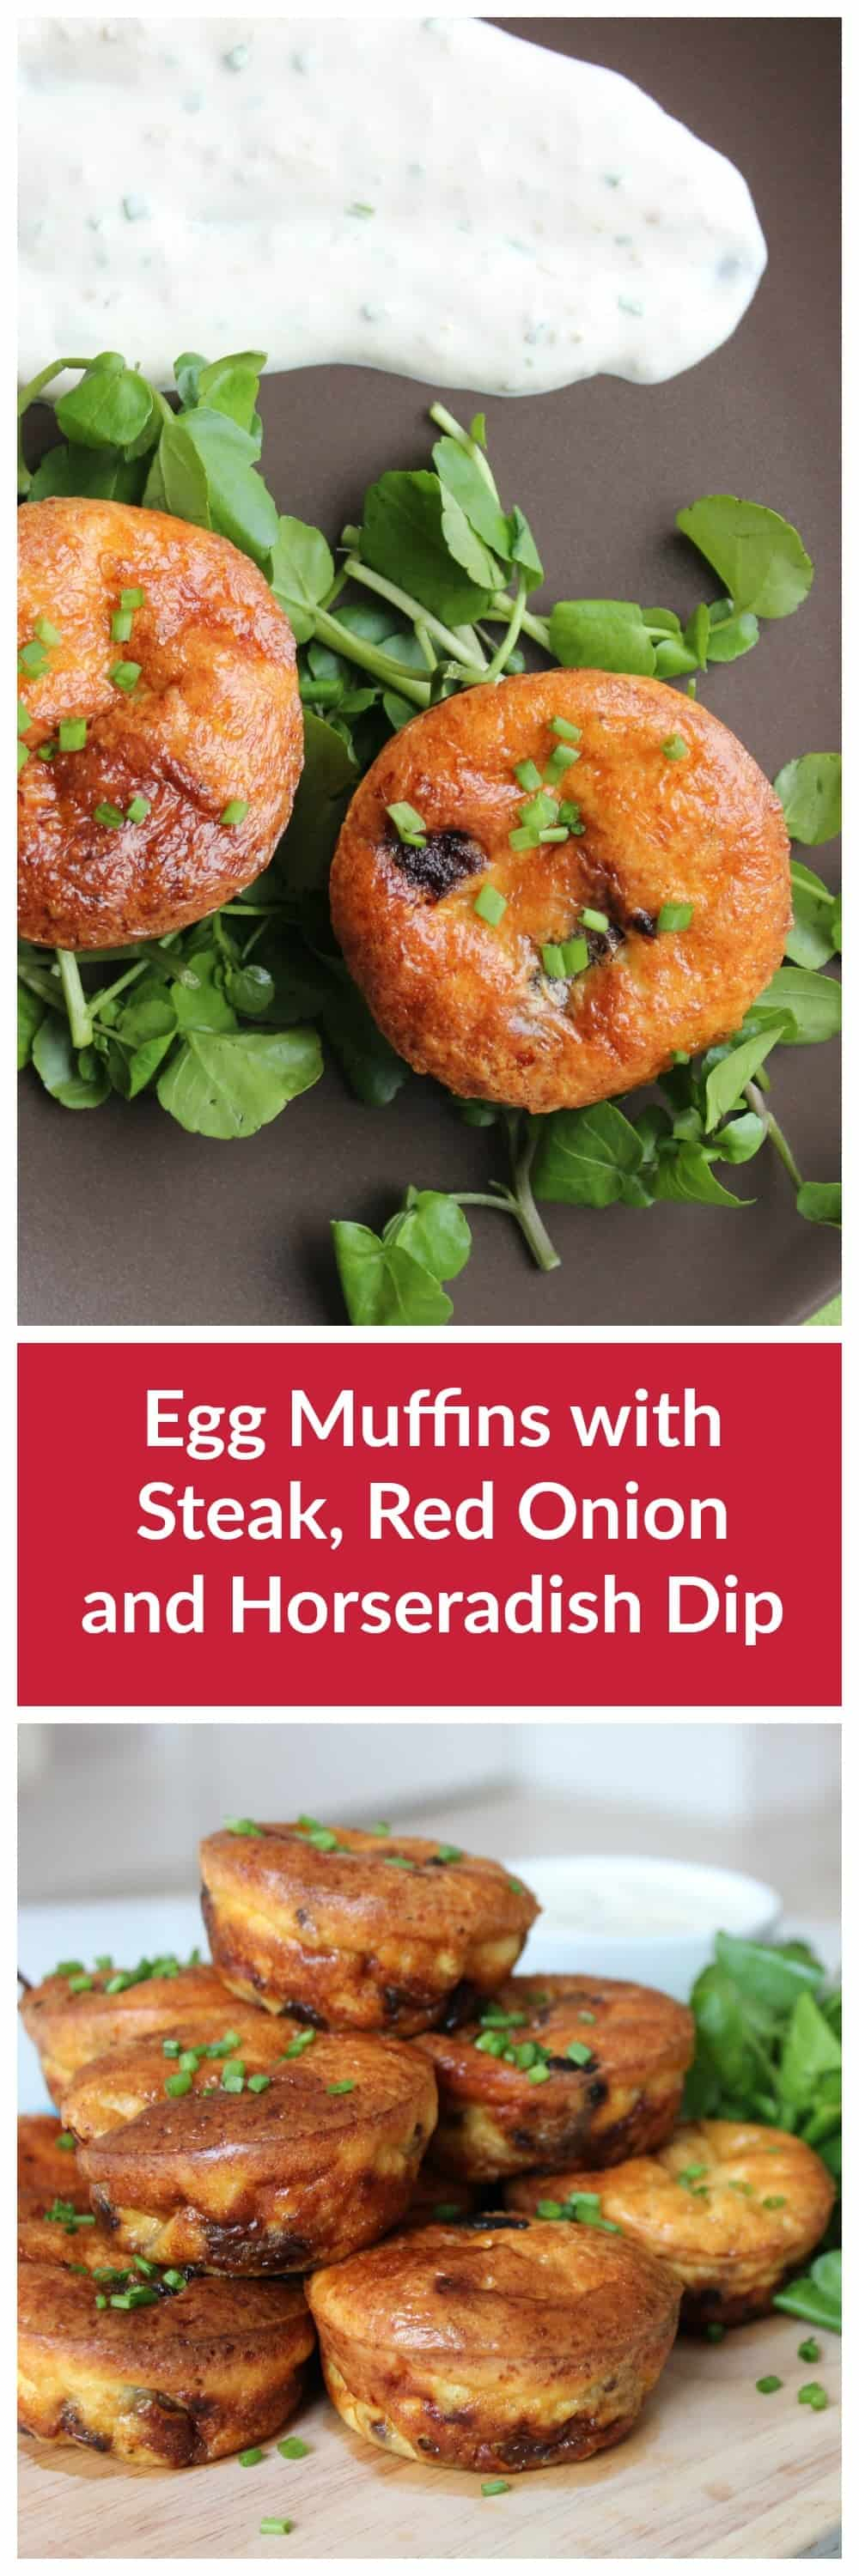 these steak and red onion egg muffins are packed full flavour and are a great for a small bite. Served with a horseradish dip